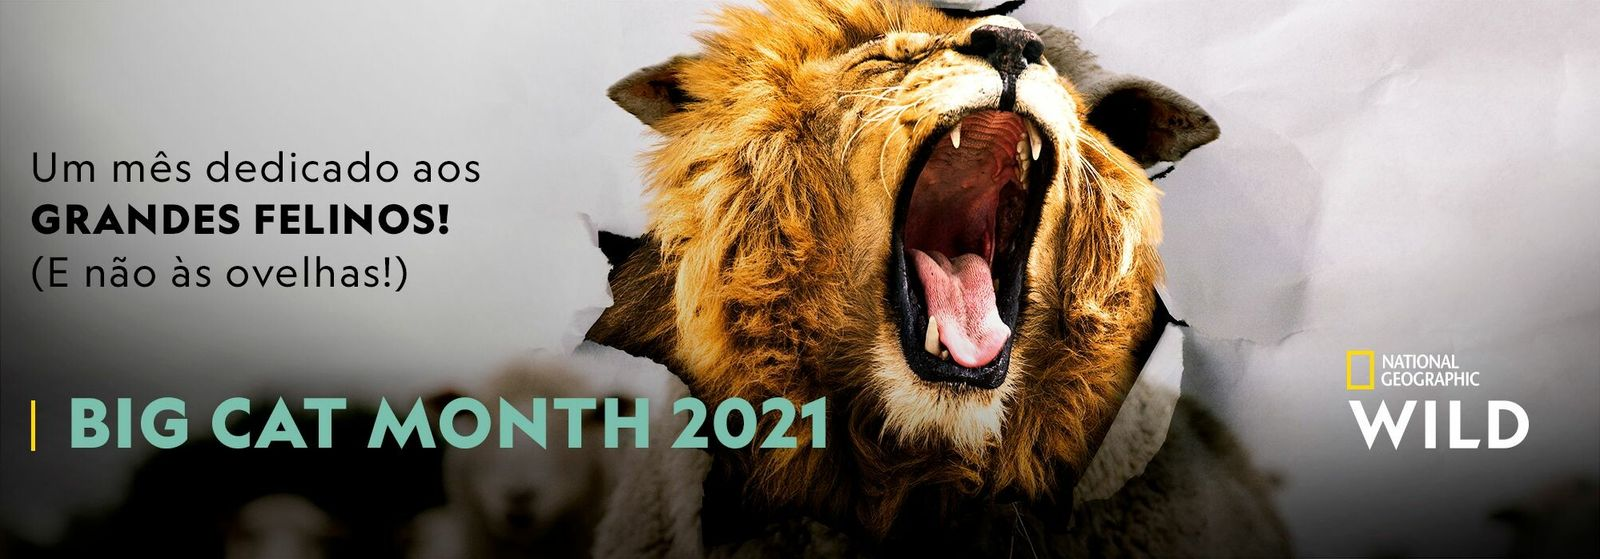 Big Cat Week 2021